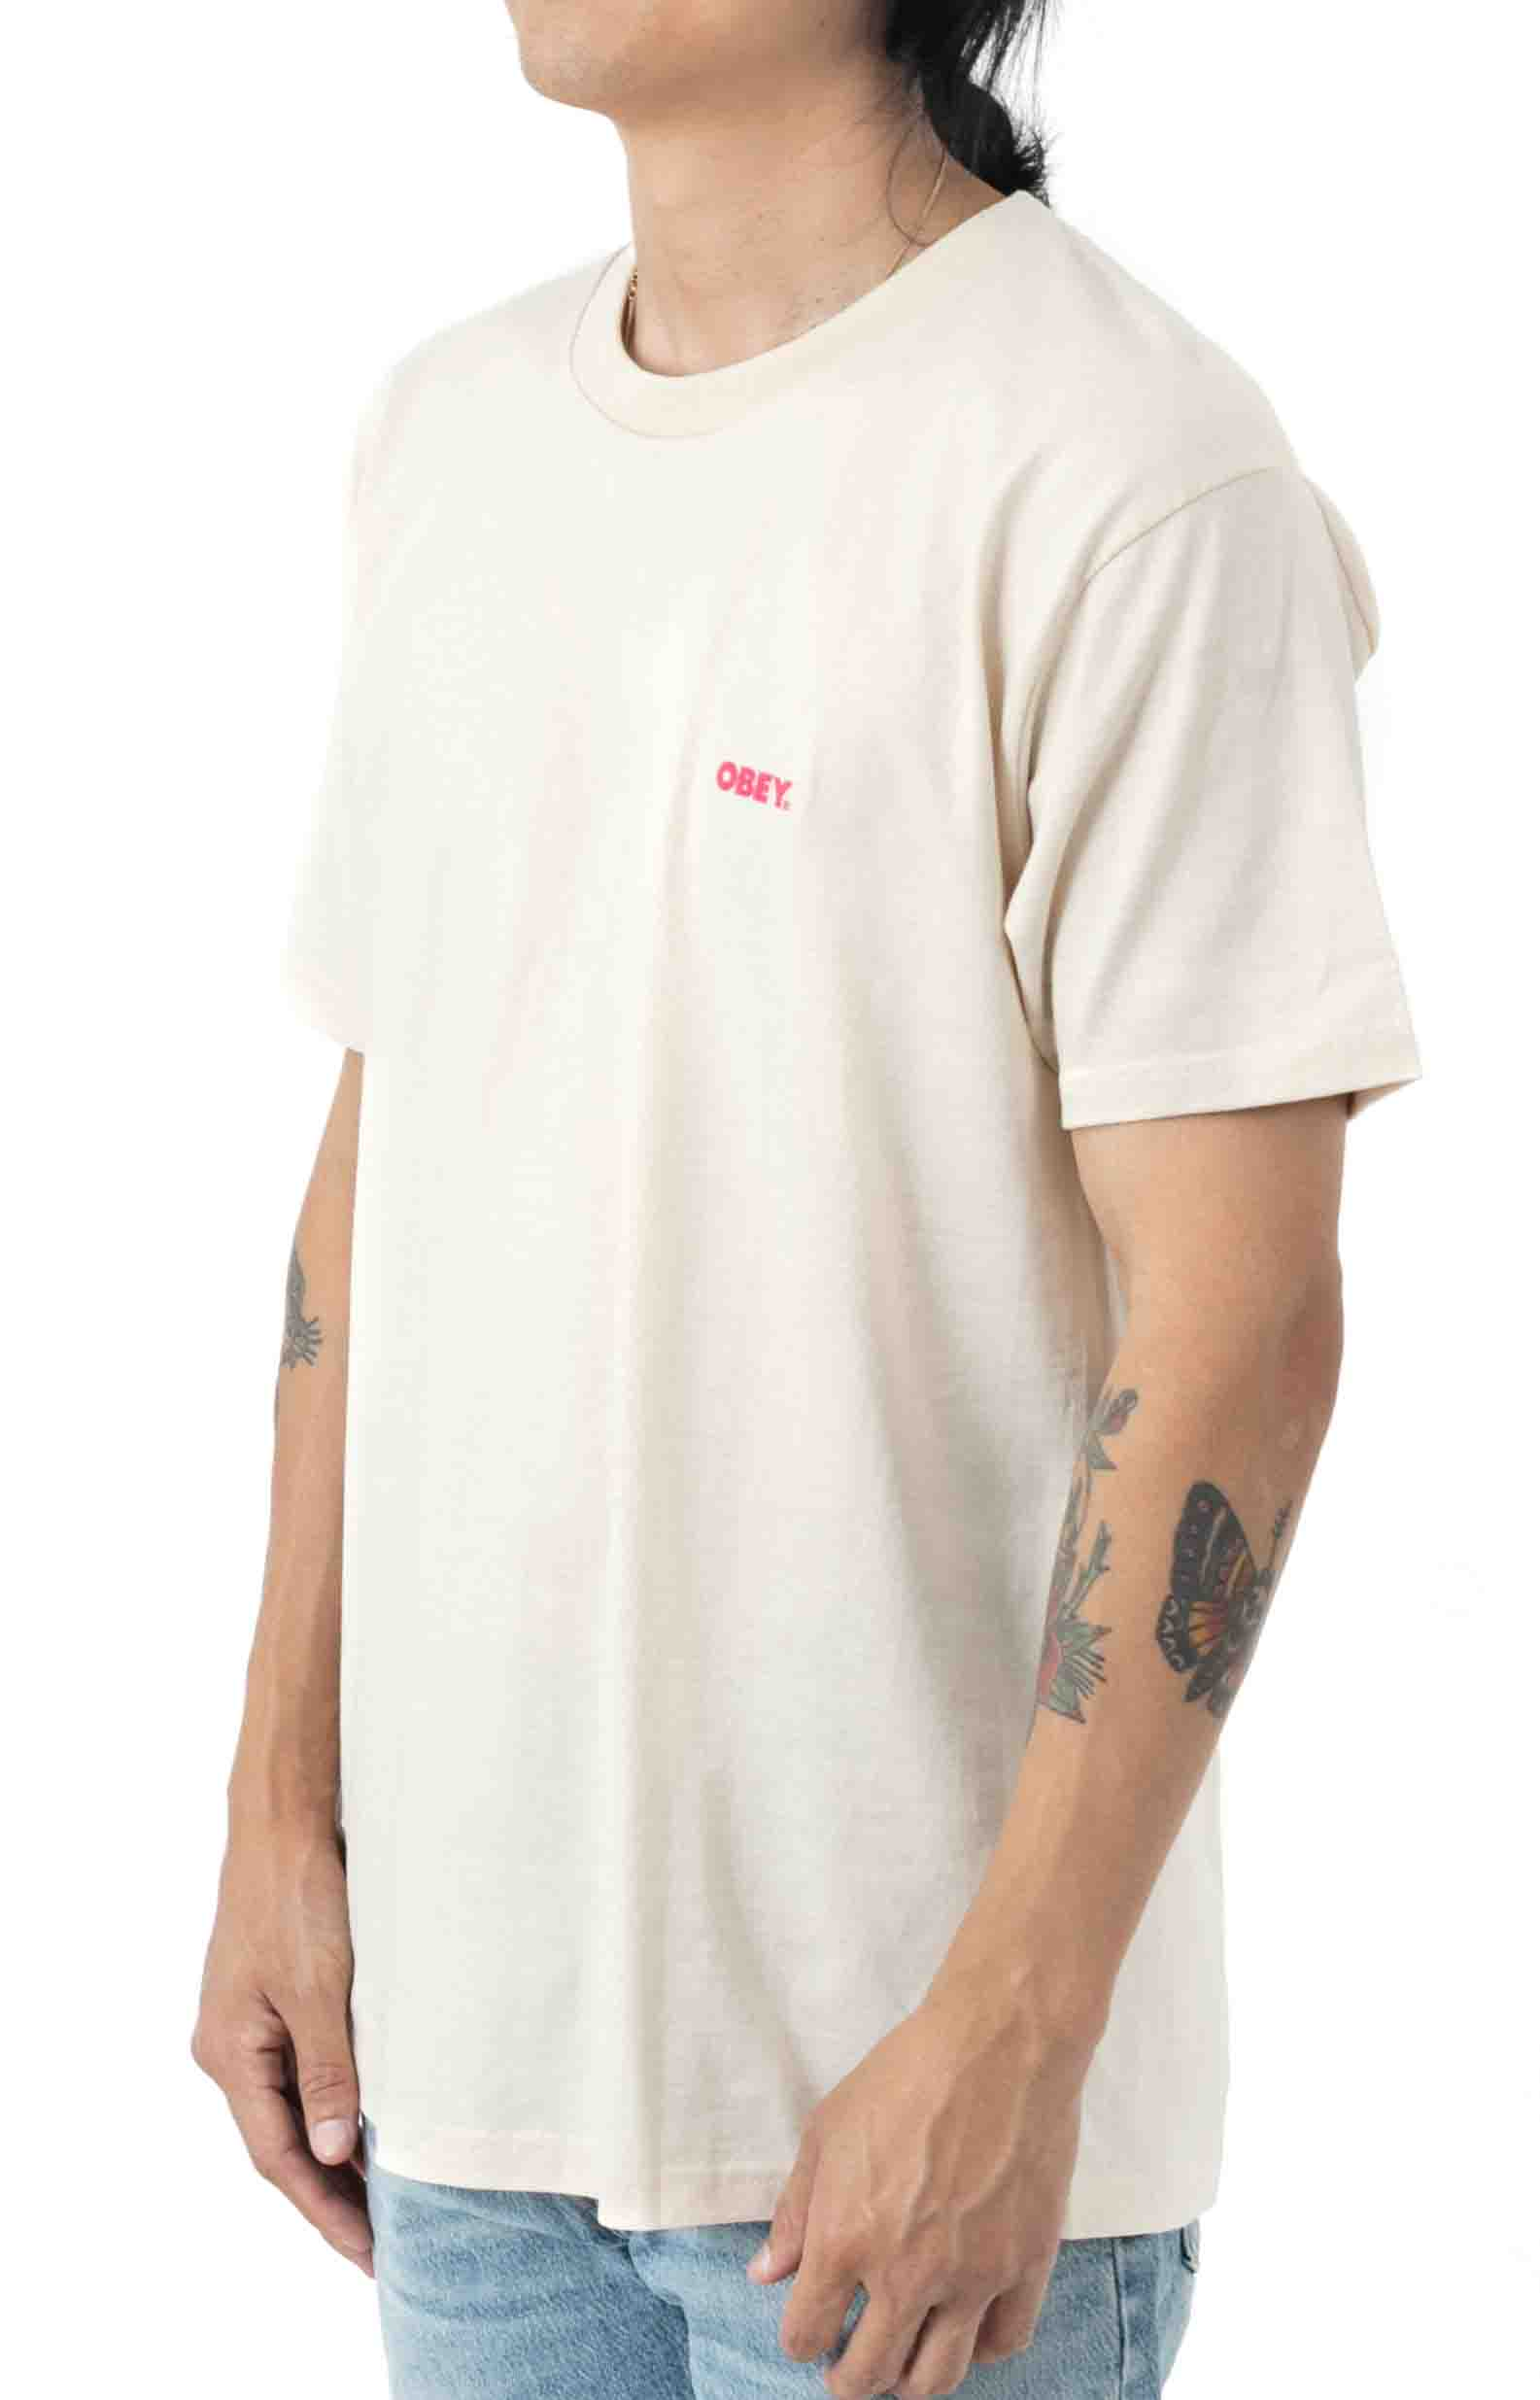 Blood and Roses T-Shirt - Cream  3